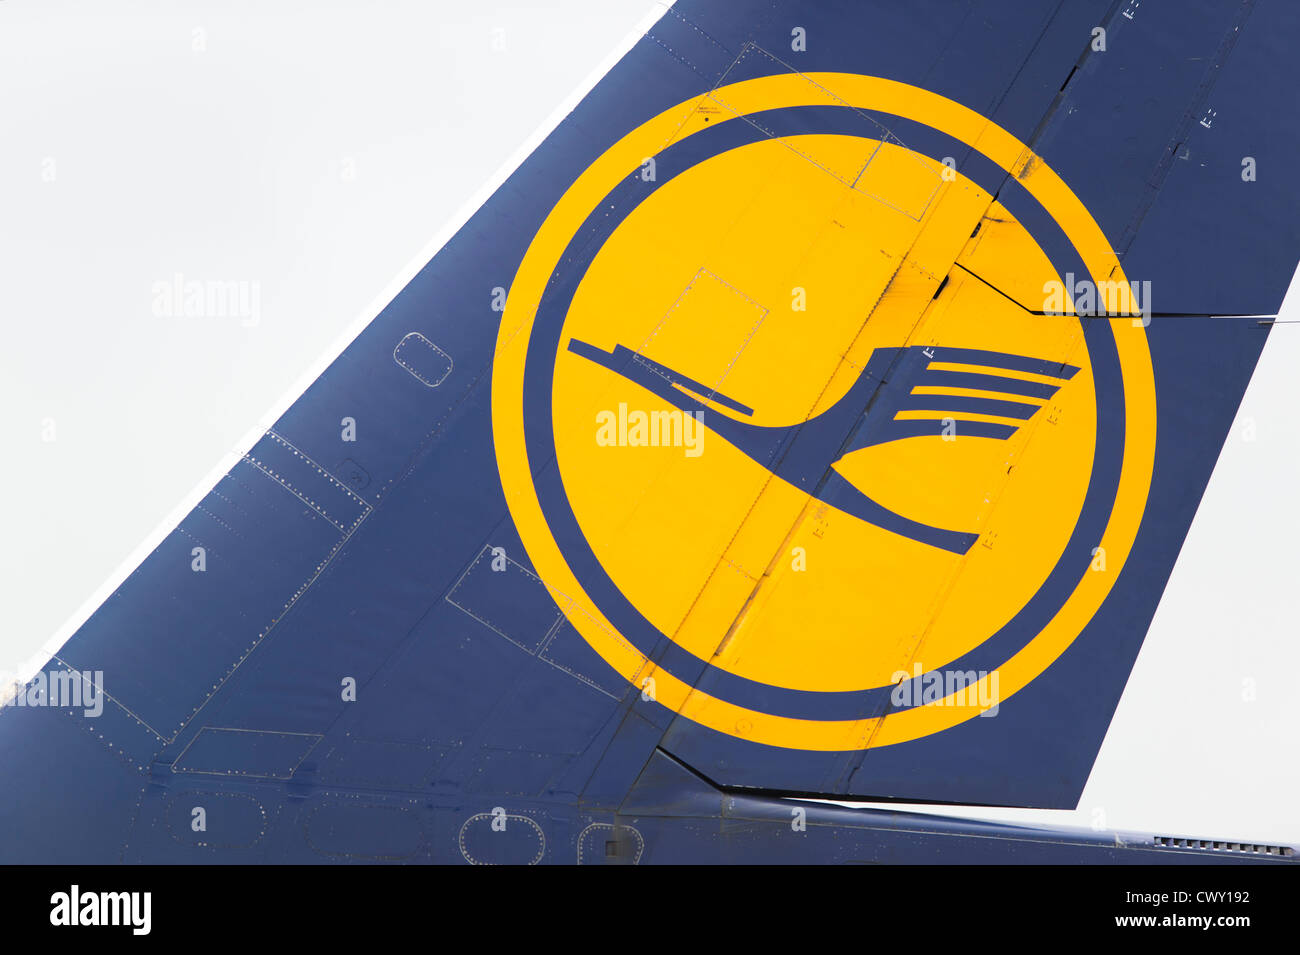 A close up of the Lufthansa logo on the tail fin of a passenger aircraft (Editorial use only) - Stock Image